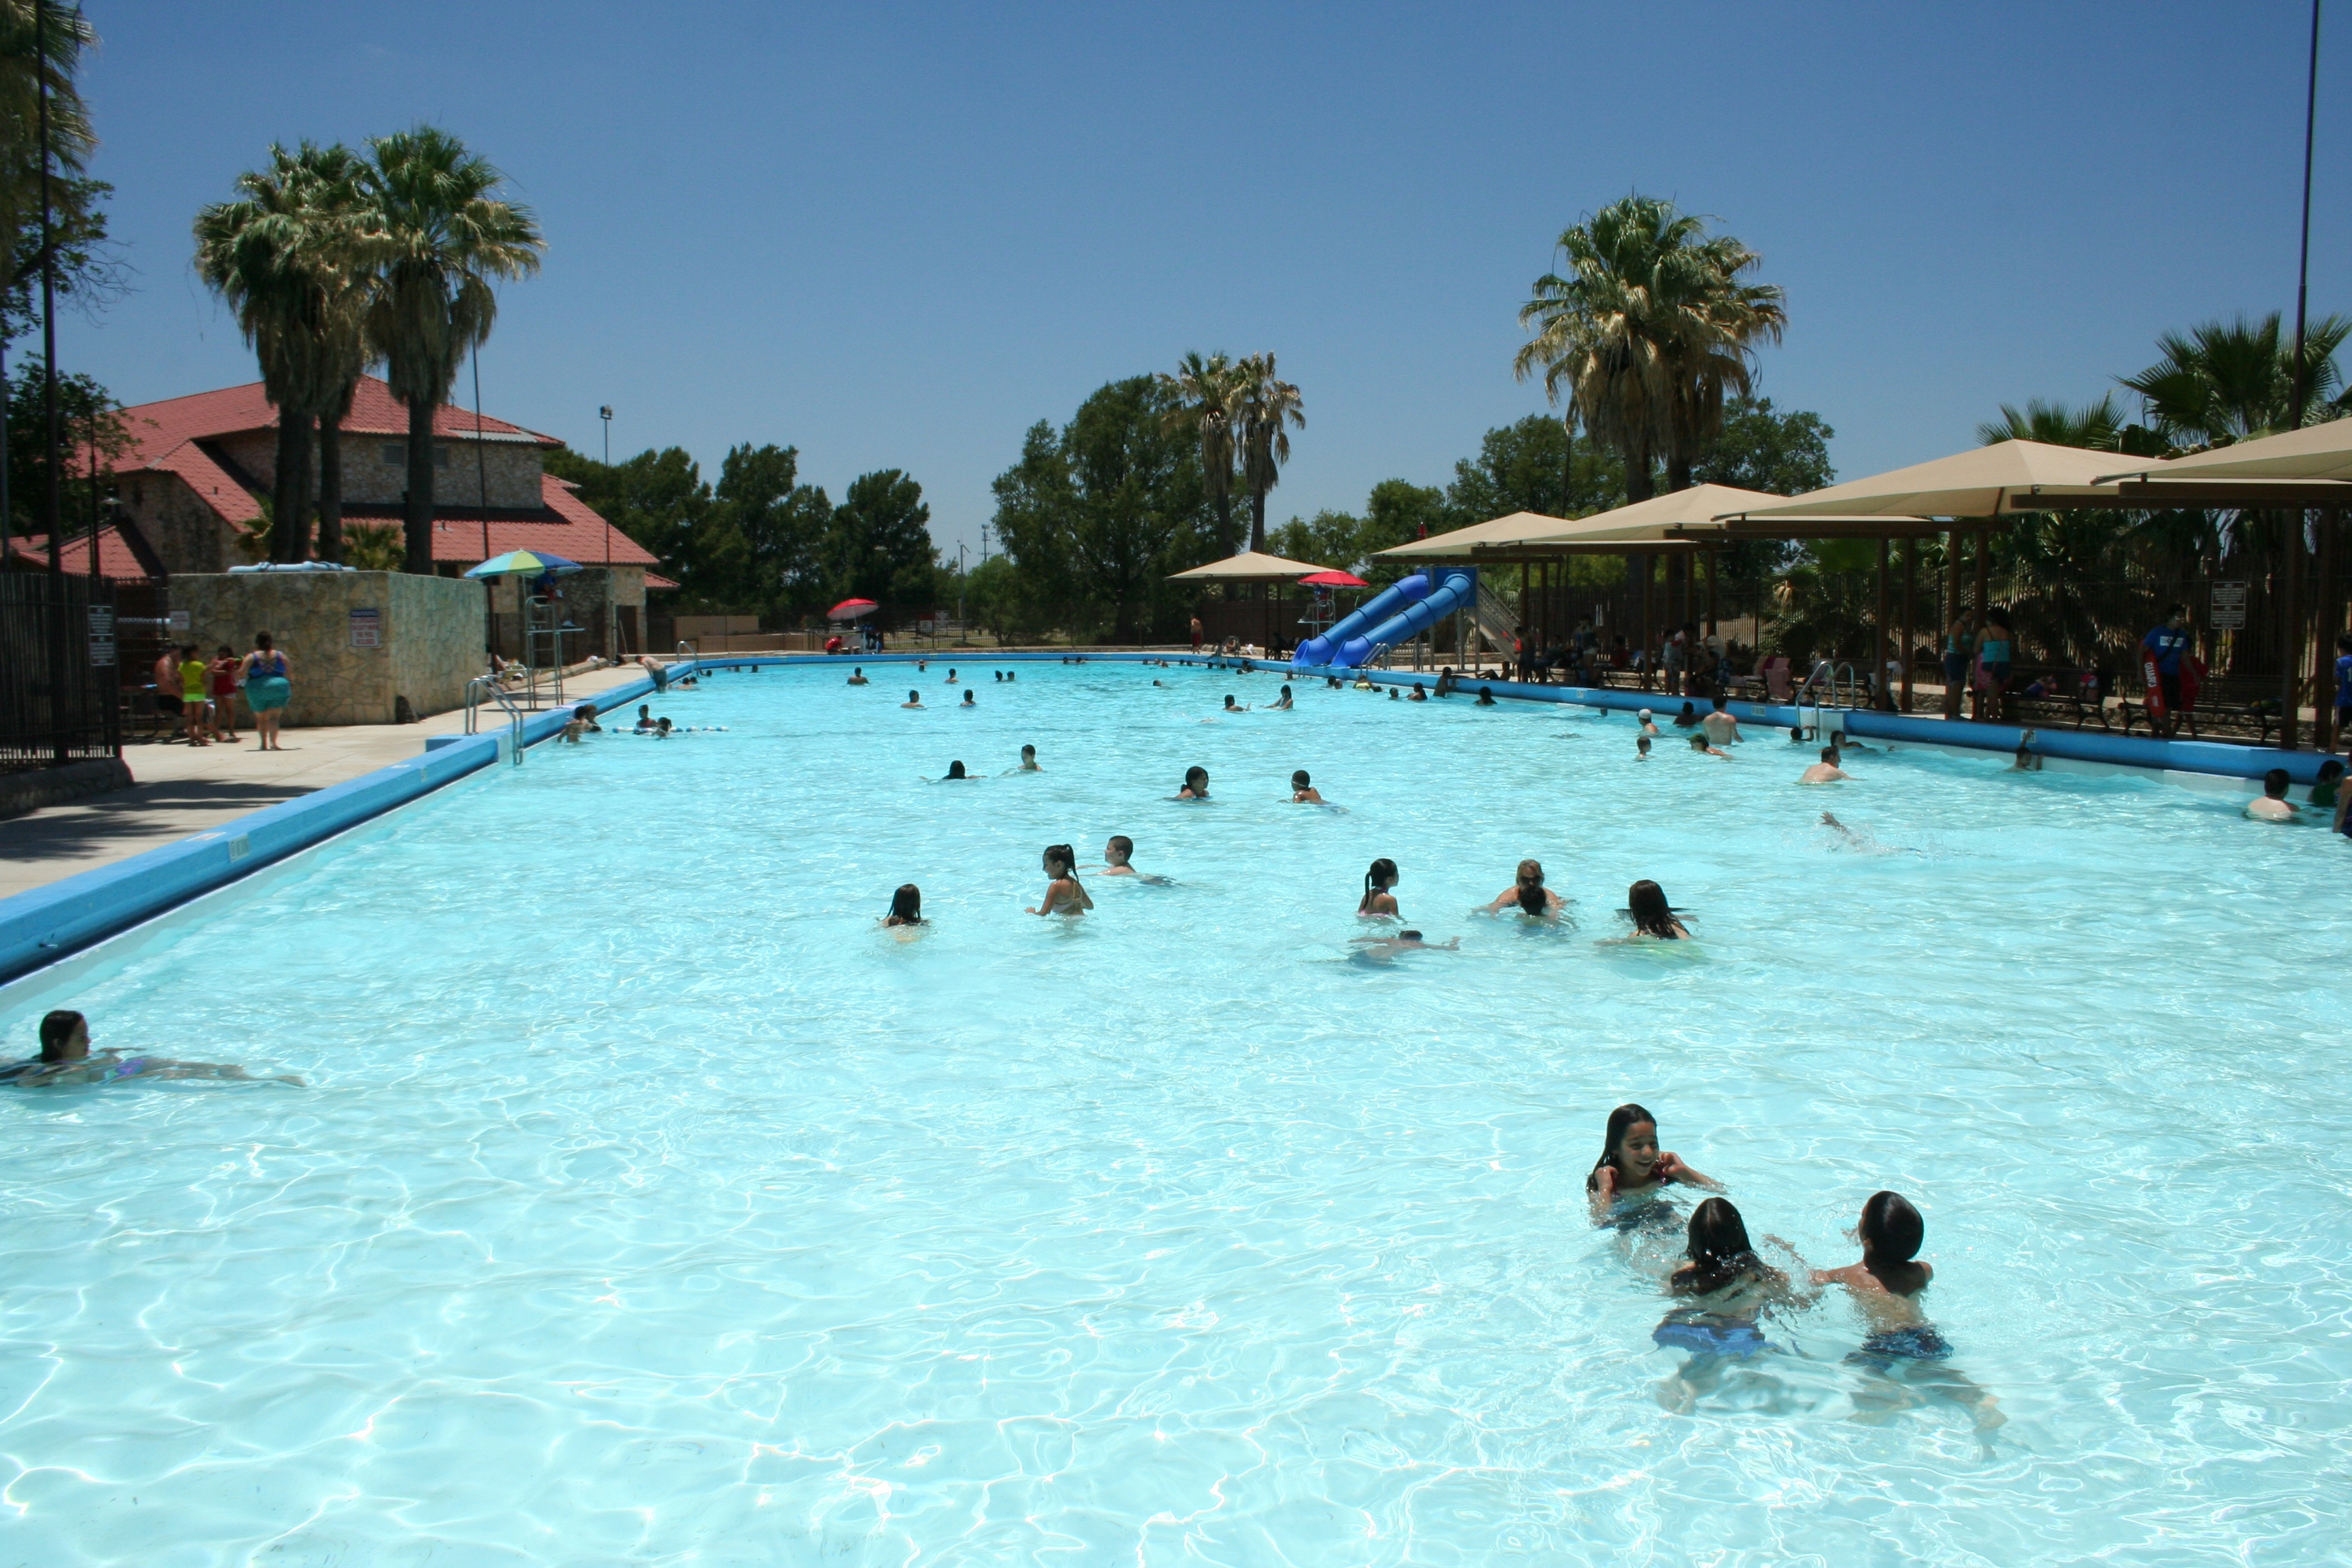 Regional Pools open for extended swim season - The City of ...